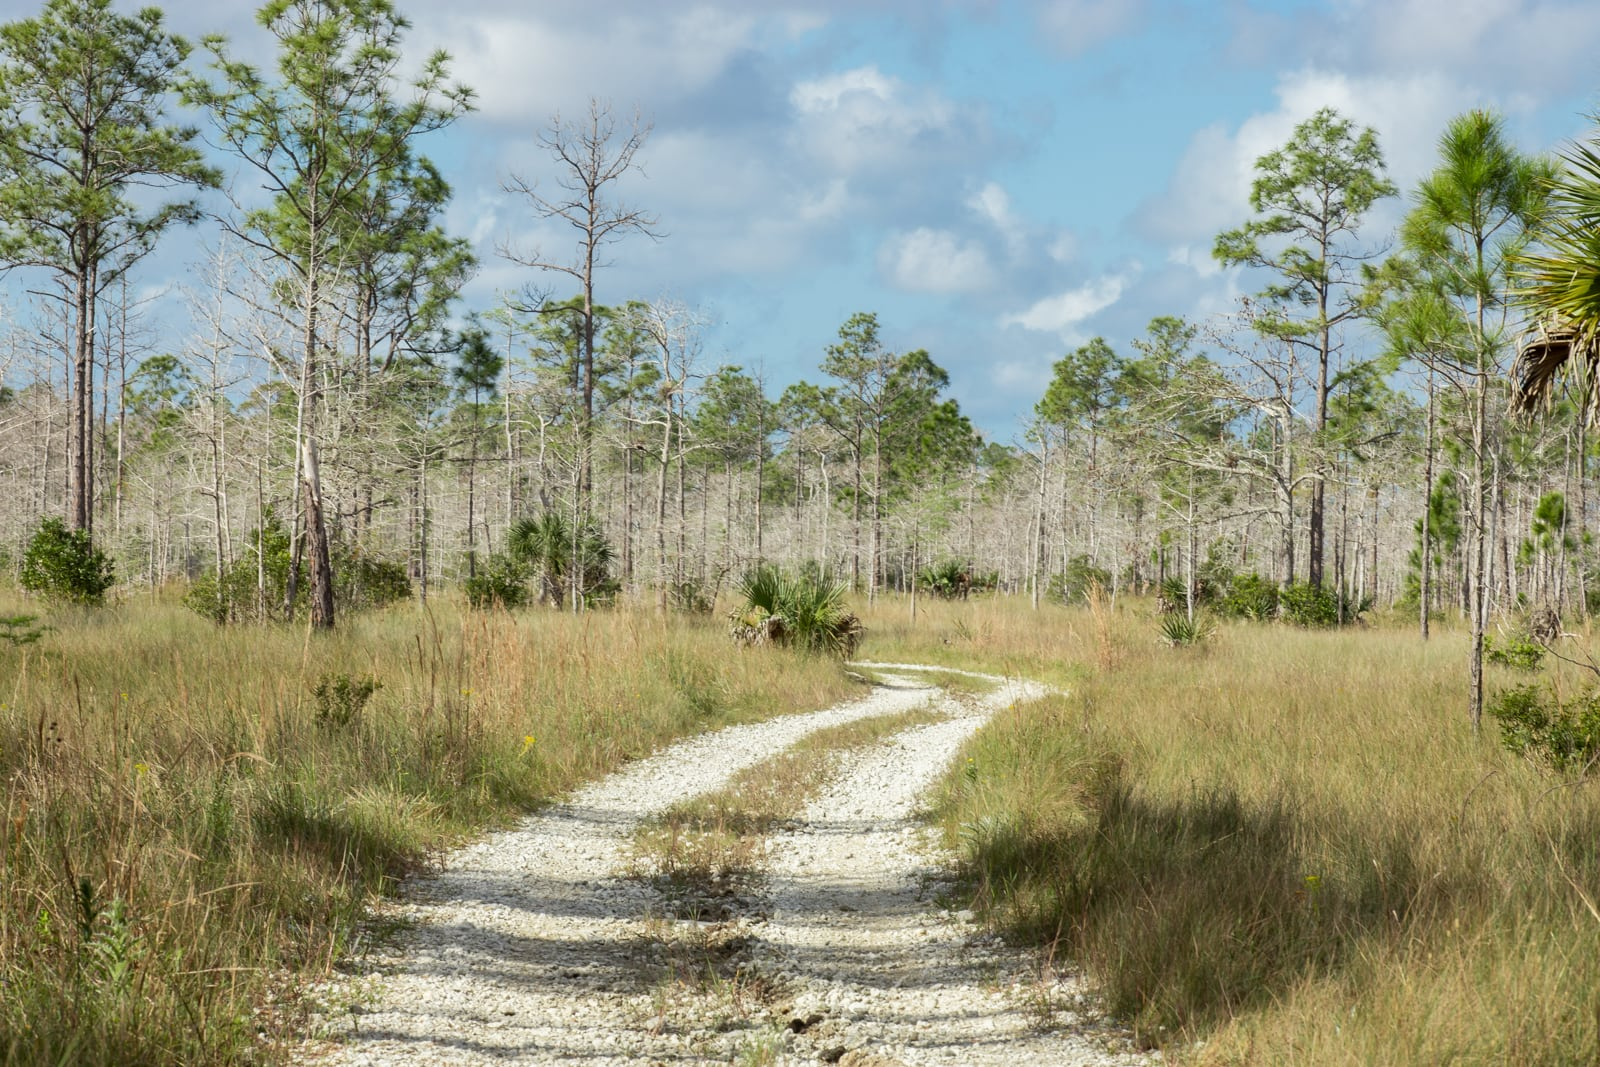 Hiking An Everglades Trail